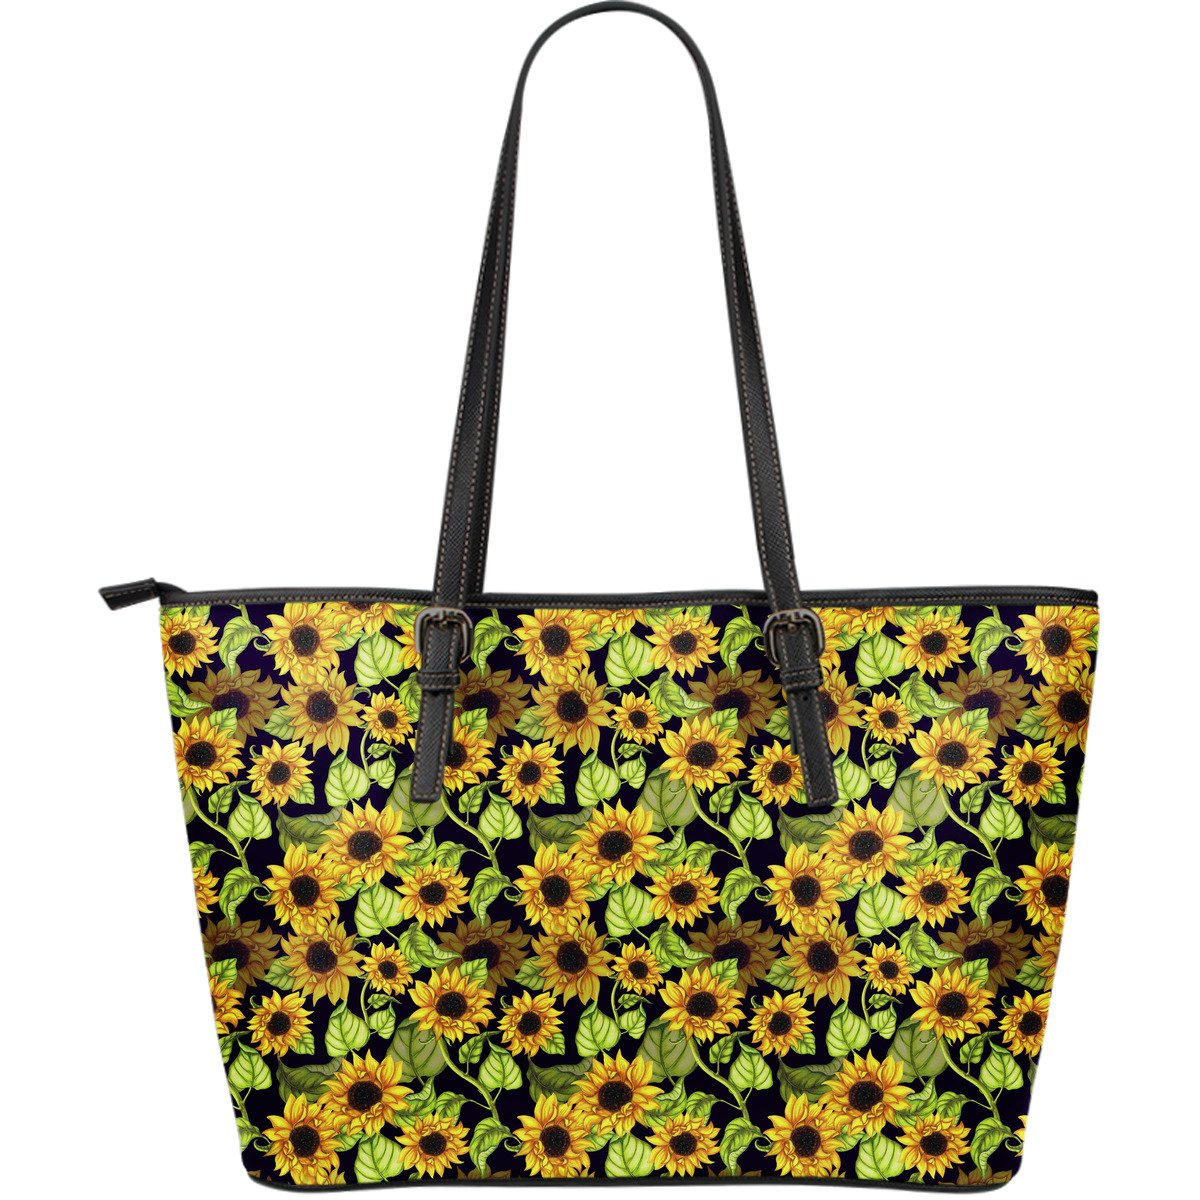 Hand Drawn Sunflower Pattern Print Leather Tote Bag GearFrost